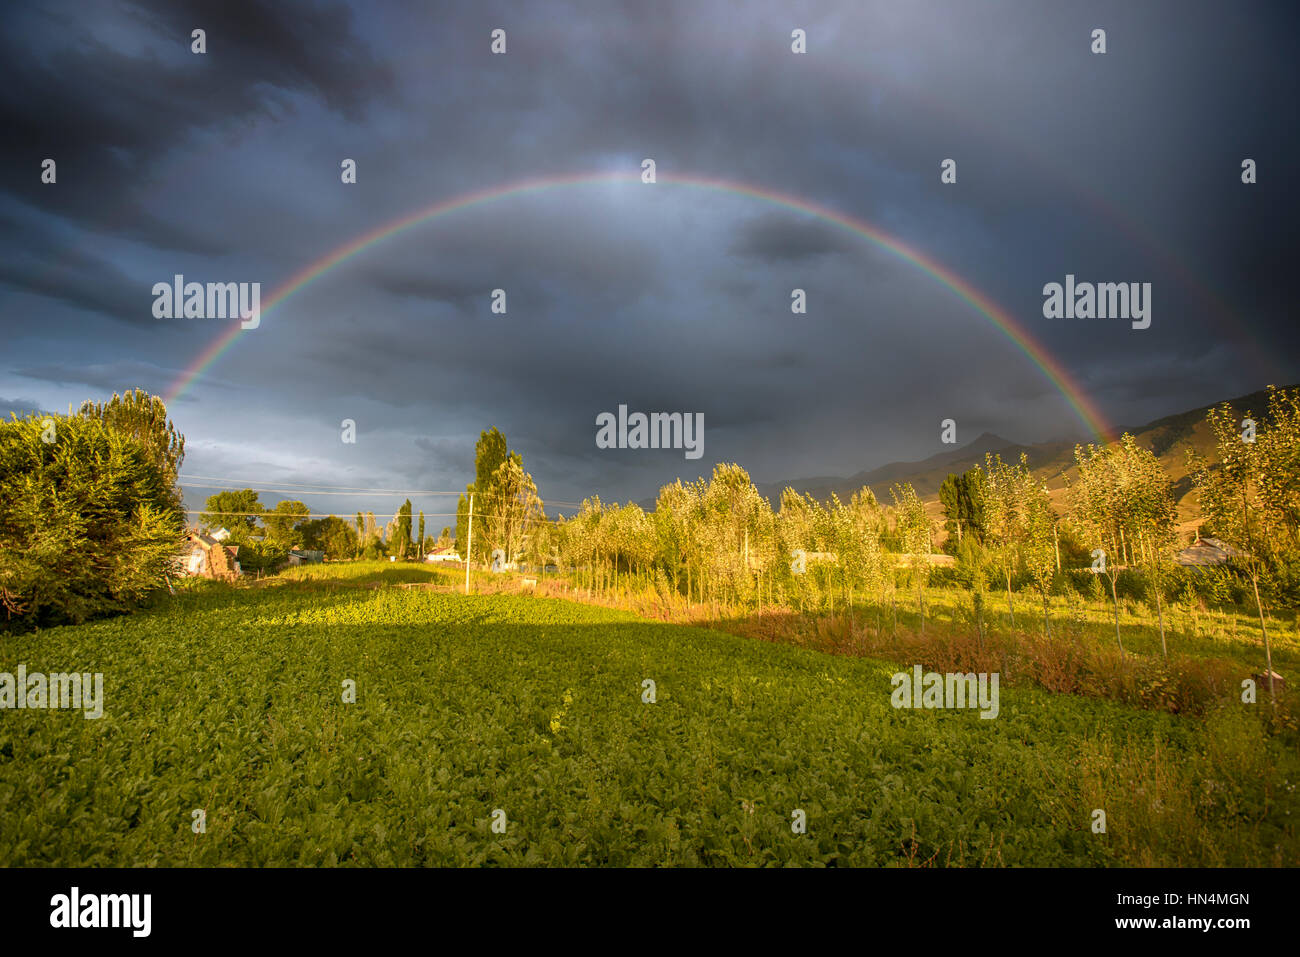 Rainbows over farm land or Chon Kemin, Kyrgyzstan - Stock Image